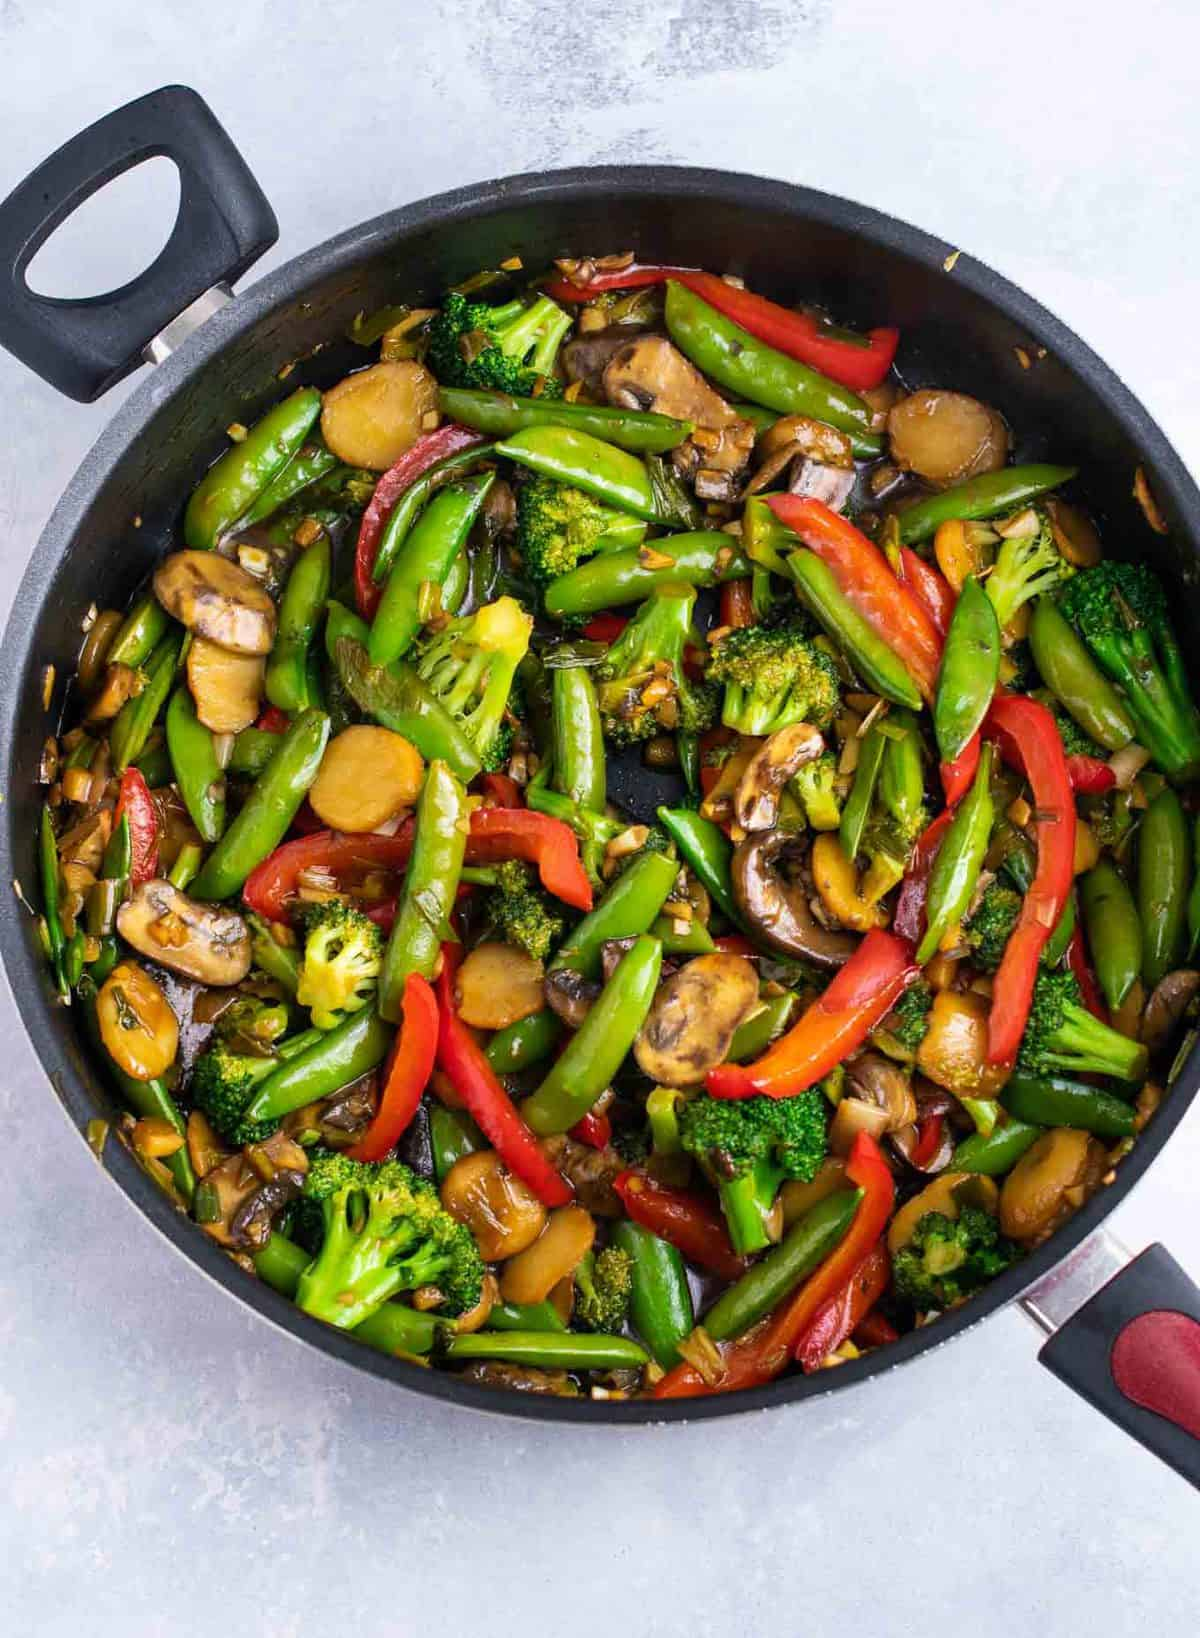 what are the best vegetables to put in stir fry